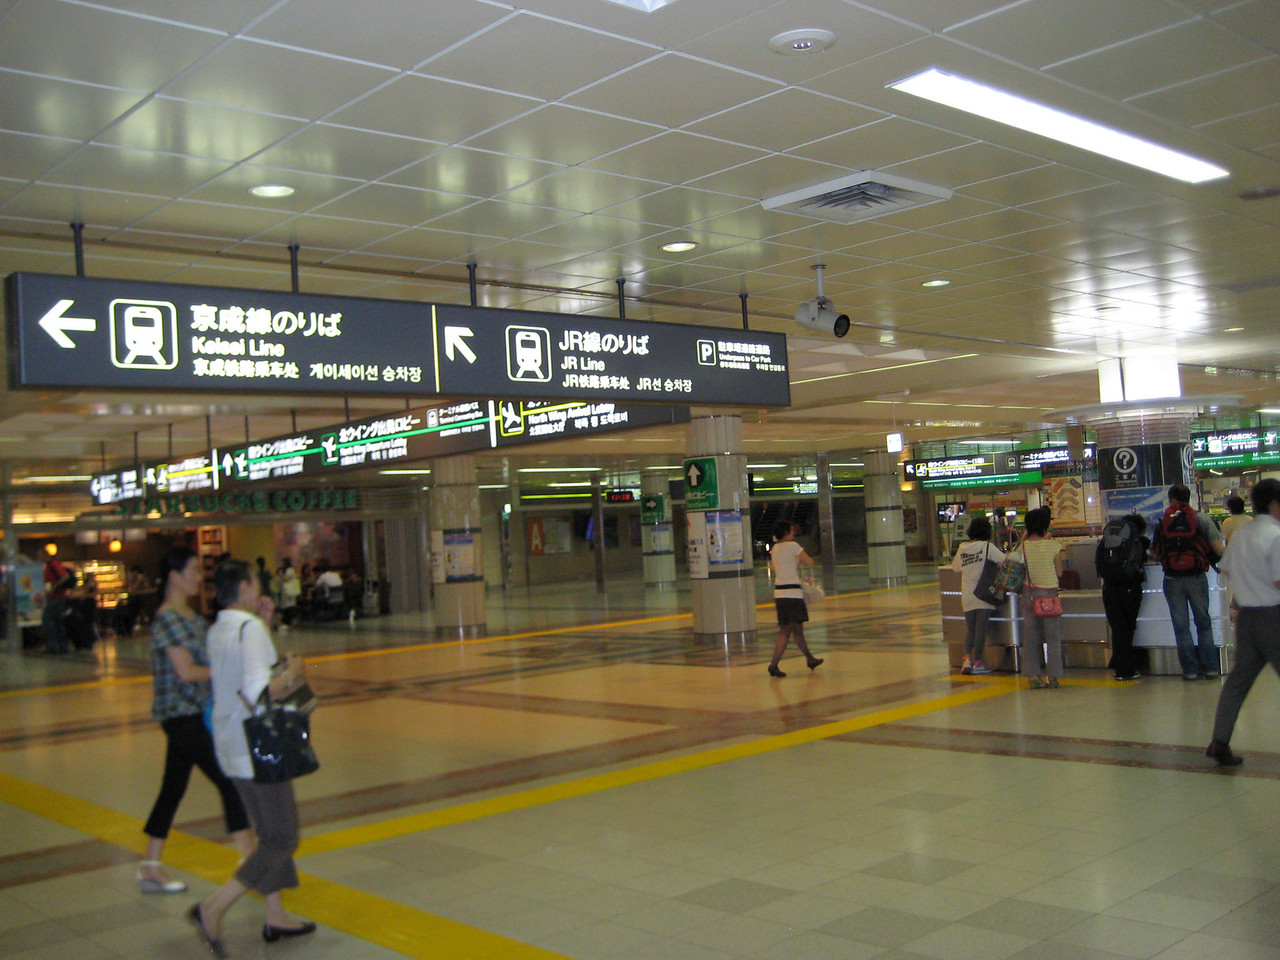 A few shots of the Narita airport terminal before we continued on our way